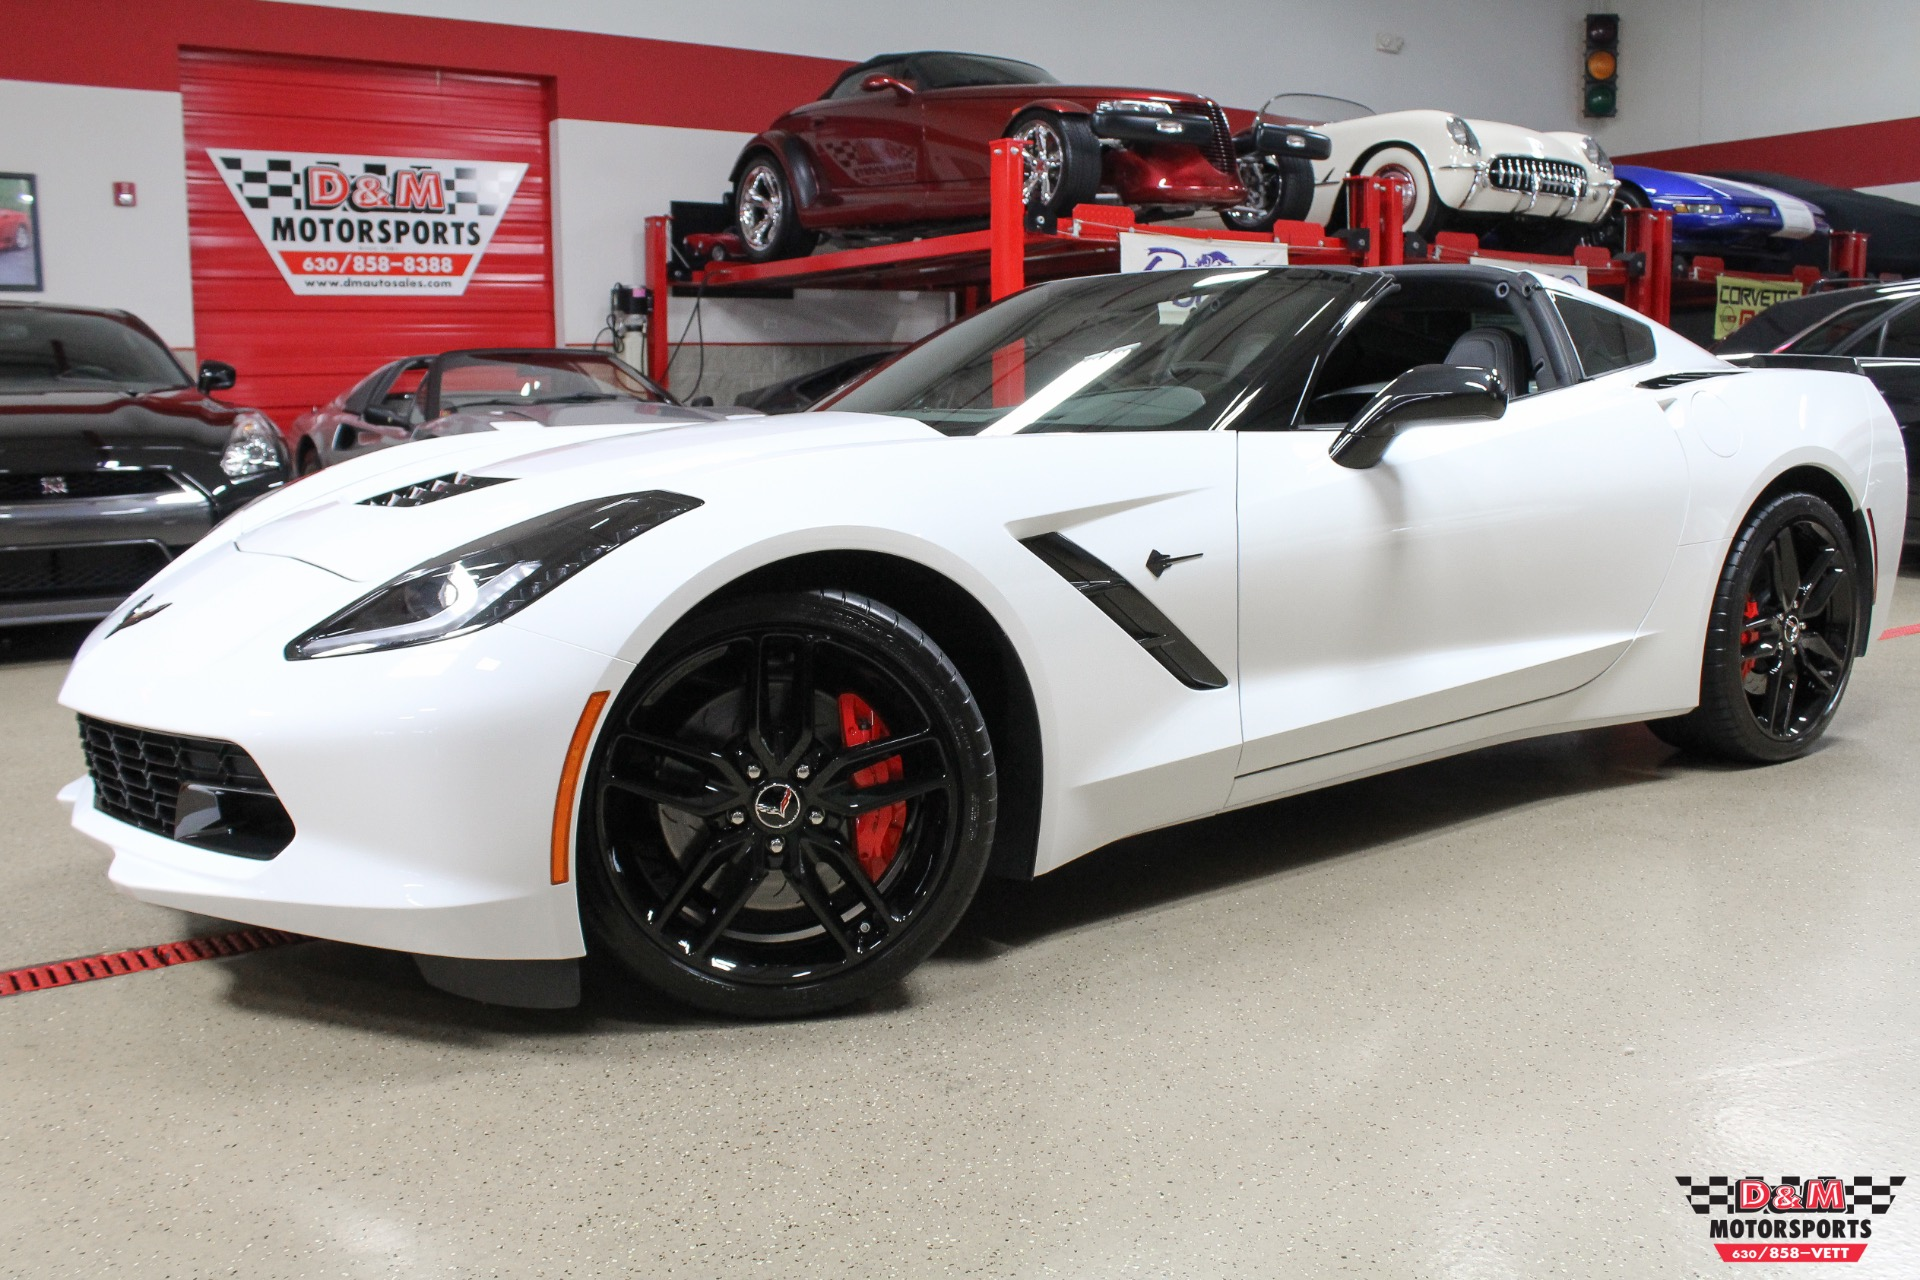 2015 chevrolet corvette stingray coupe w z51 stock m6487. Black Bedroom Furniture Sets. Home Design Ideas